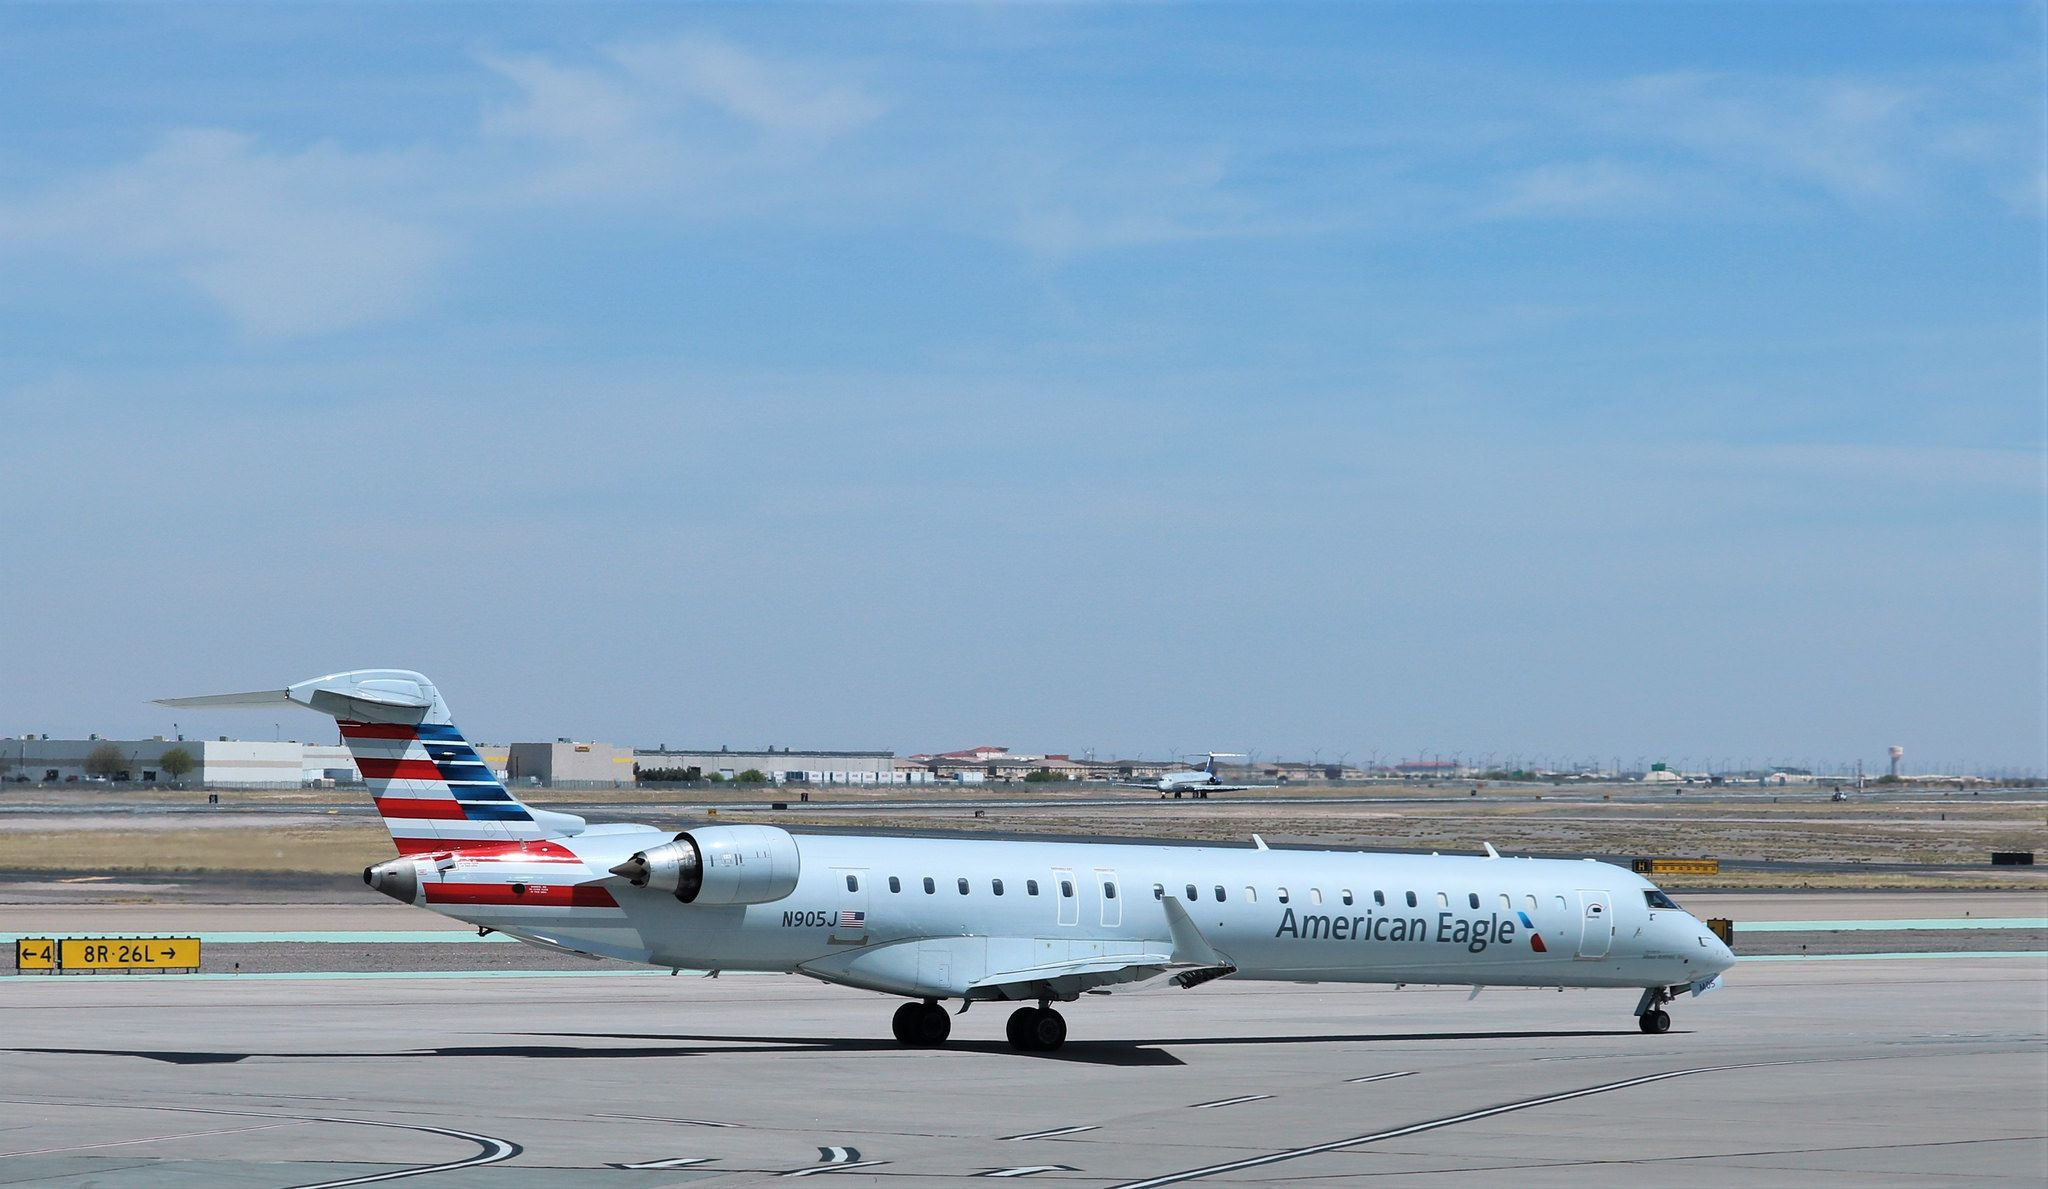 Mesa Airlines American Eagle Mesa Airlines Crj 900 Elp Eagle American